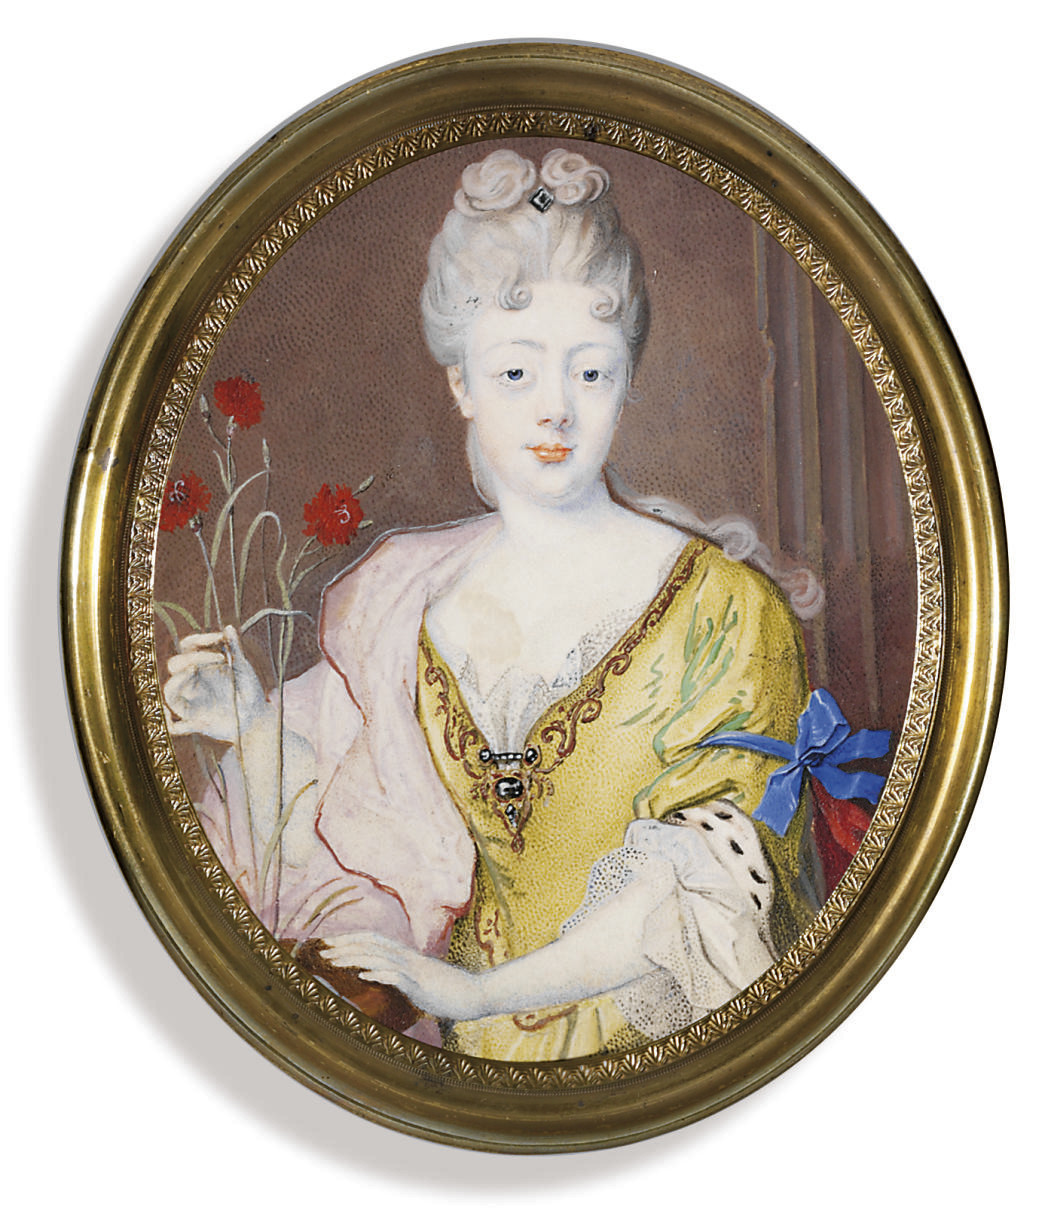 Princess Teresa Kunegunde Sobieski (1676-1730), in yellow dress with a jewel-set fastening, ermine trim on sleeve and a white lace underslip, with a pink shawl draped over her right shoulder and a blue ribbon tied around her left arm, her left hand resting on a plant pot filled with three long-stemmed red carnations; column background